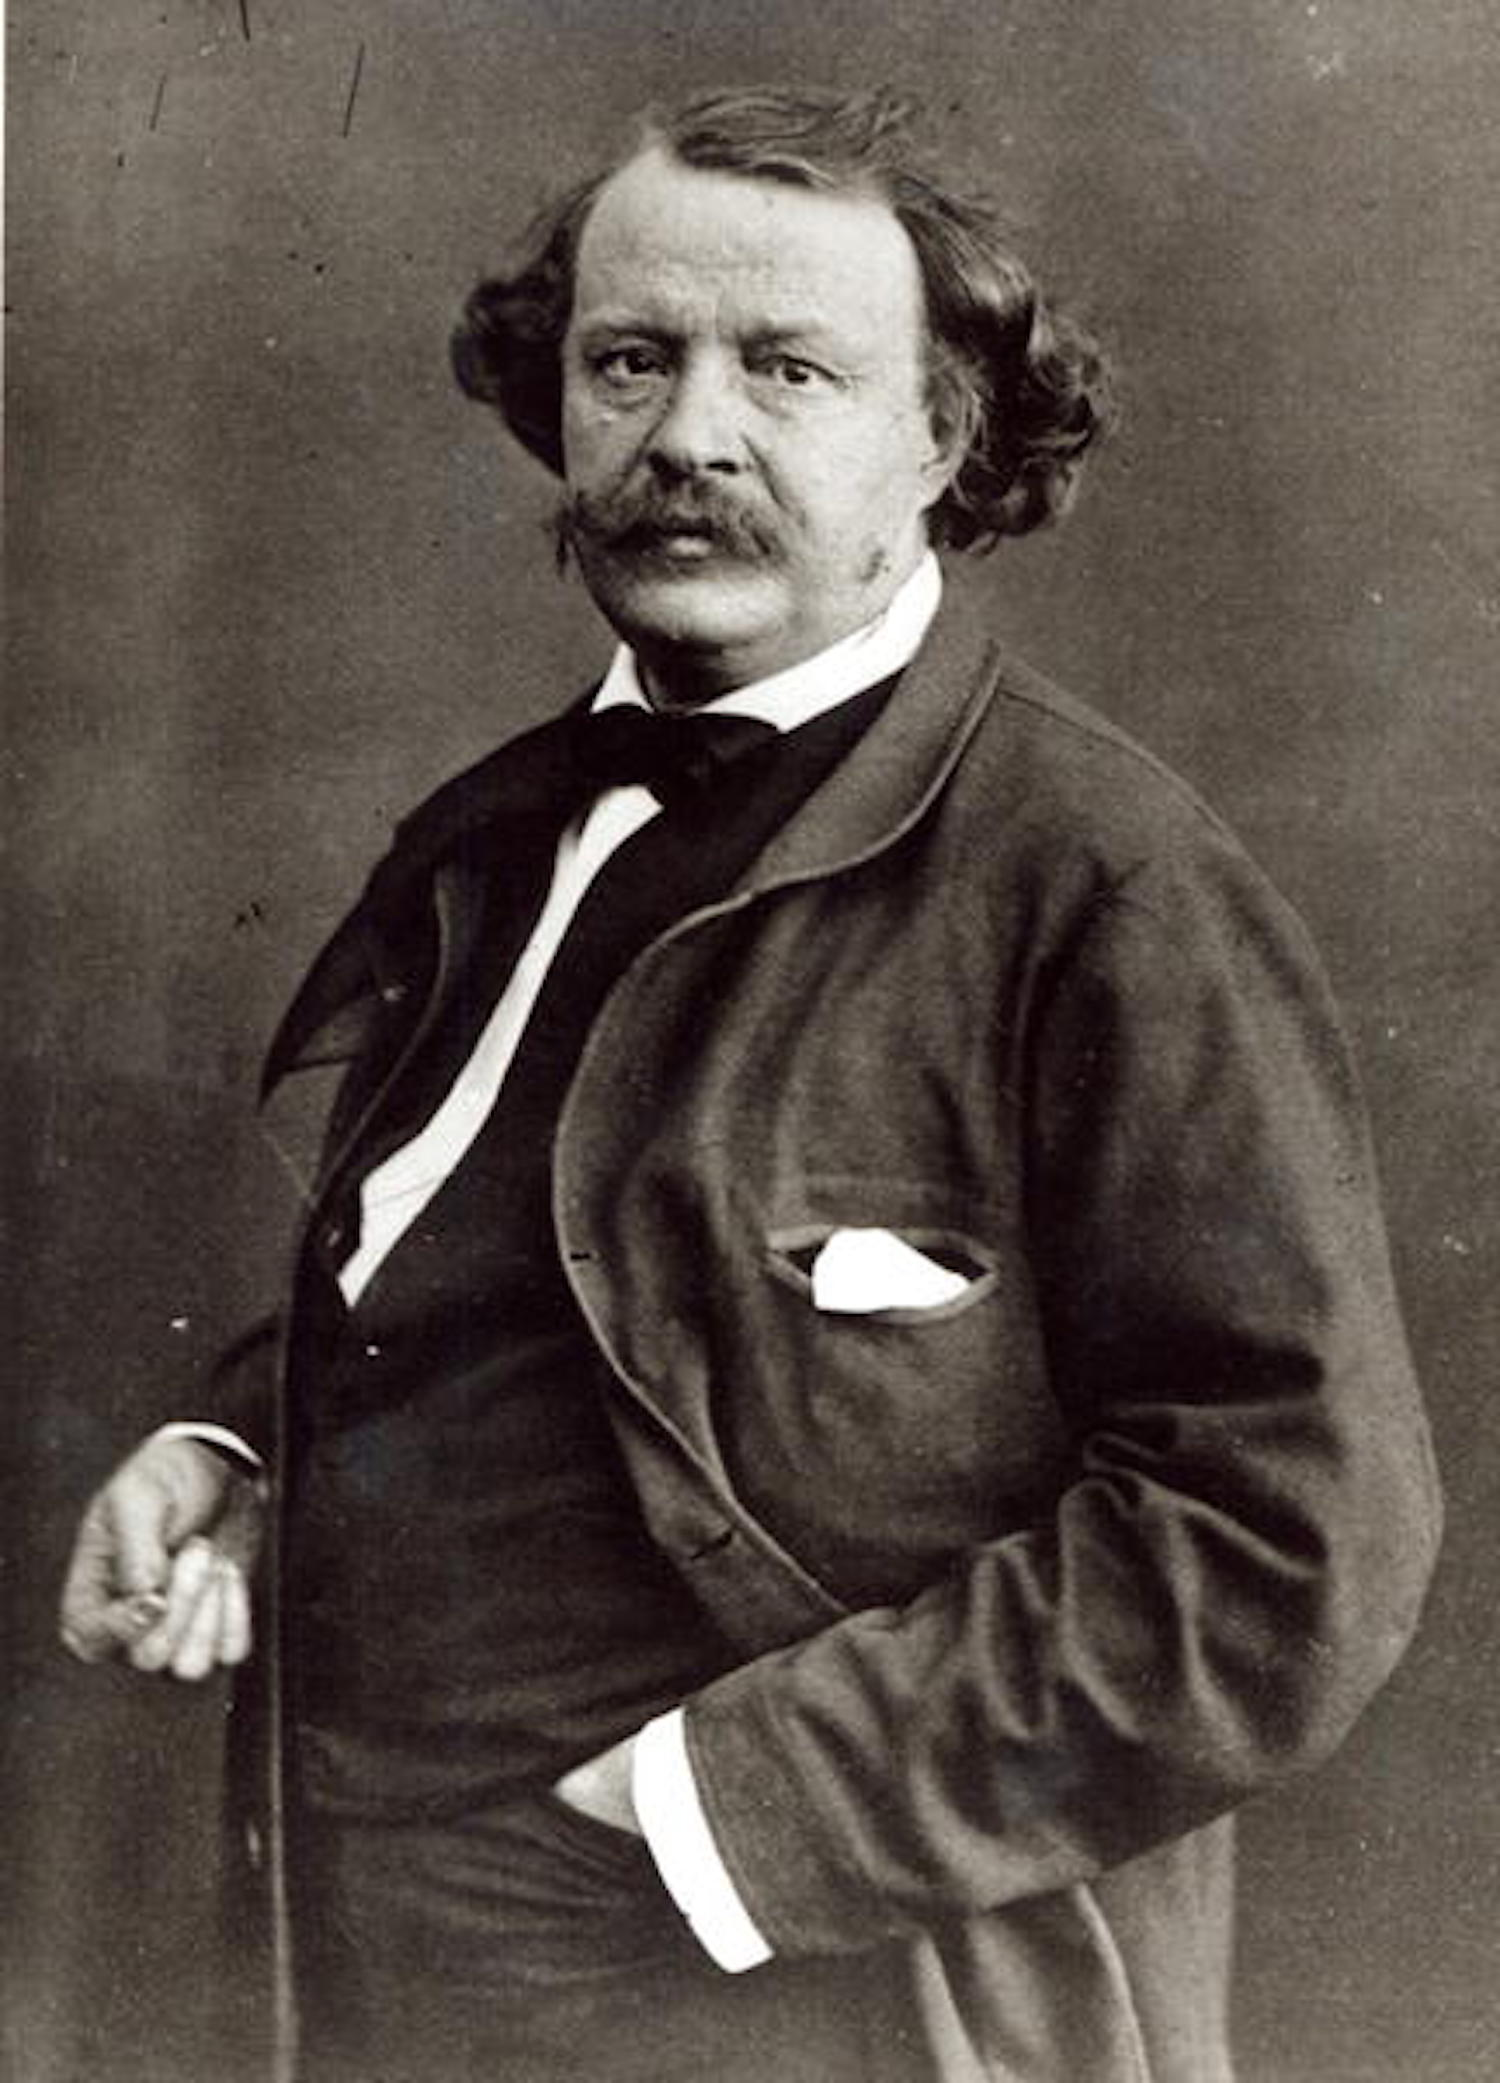 Felix Nadar, c.1860 (b/w photo) by Nadar, (Gaspard Felix Tournachon) (1820-1910)